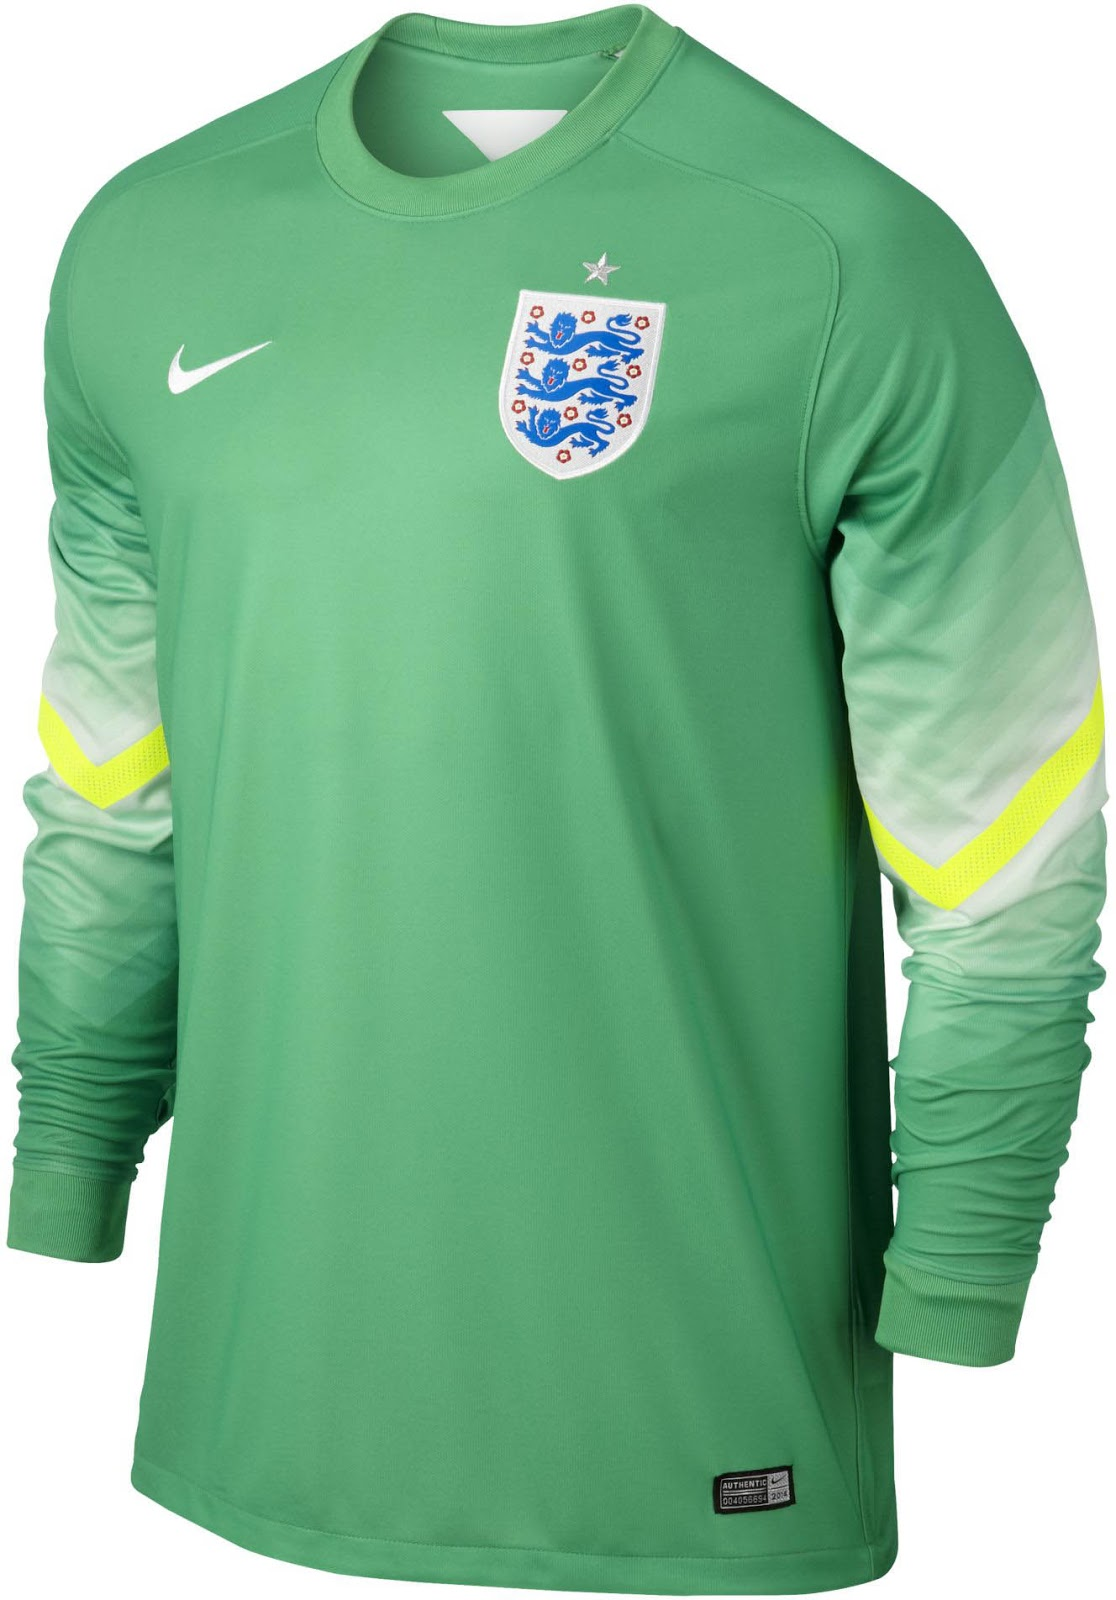 buy online ac54a 98d17 England National Soccer Team Shirts – EDGE Engineering and ...